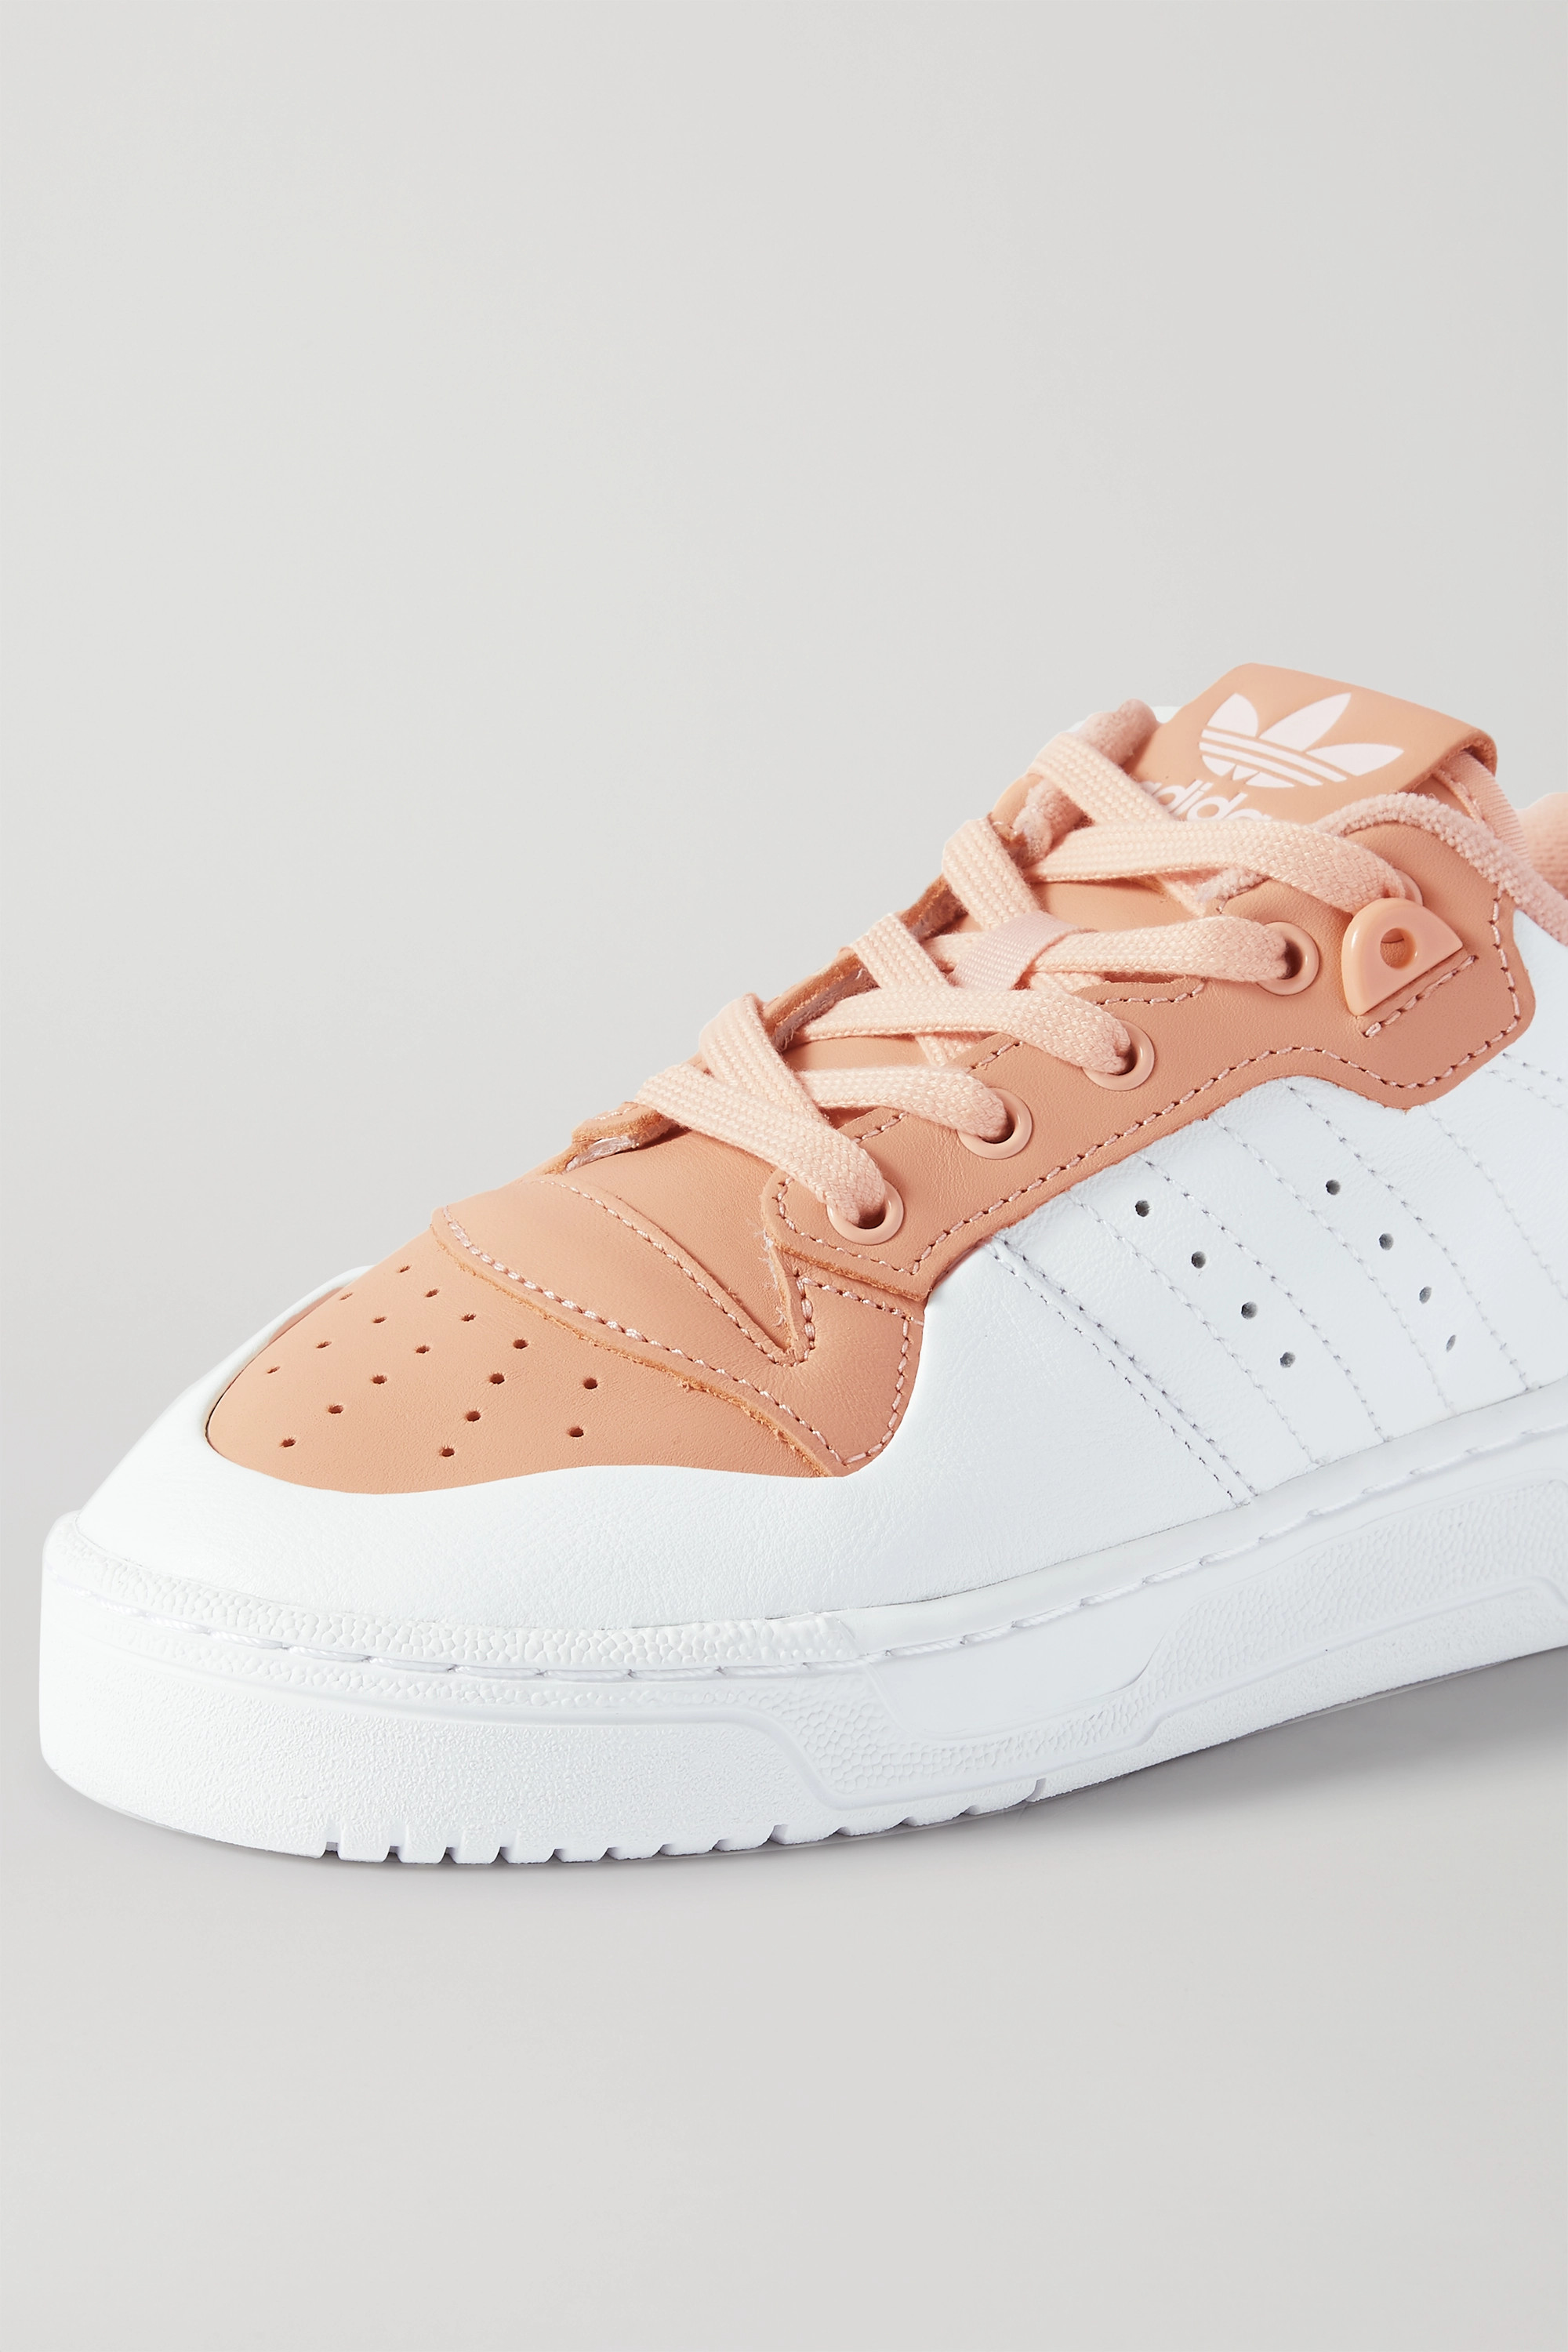 adidas Originals Rivalry Low two-tone leather sneakers